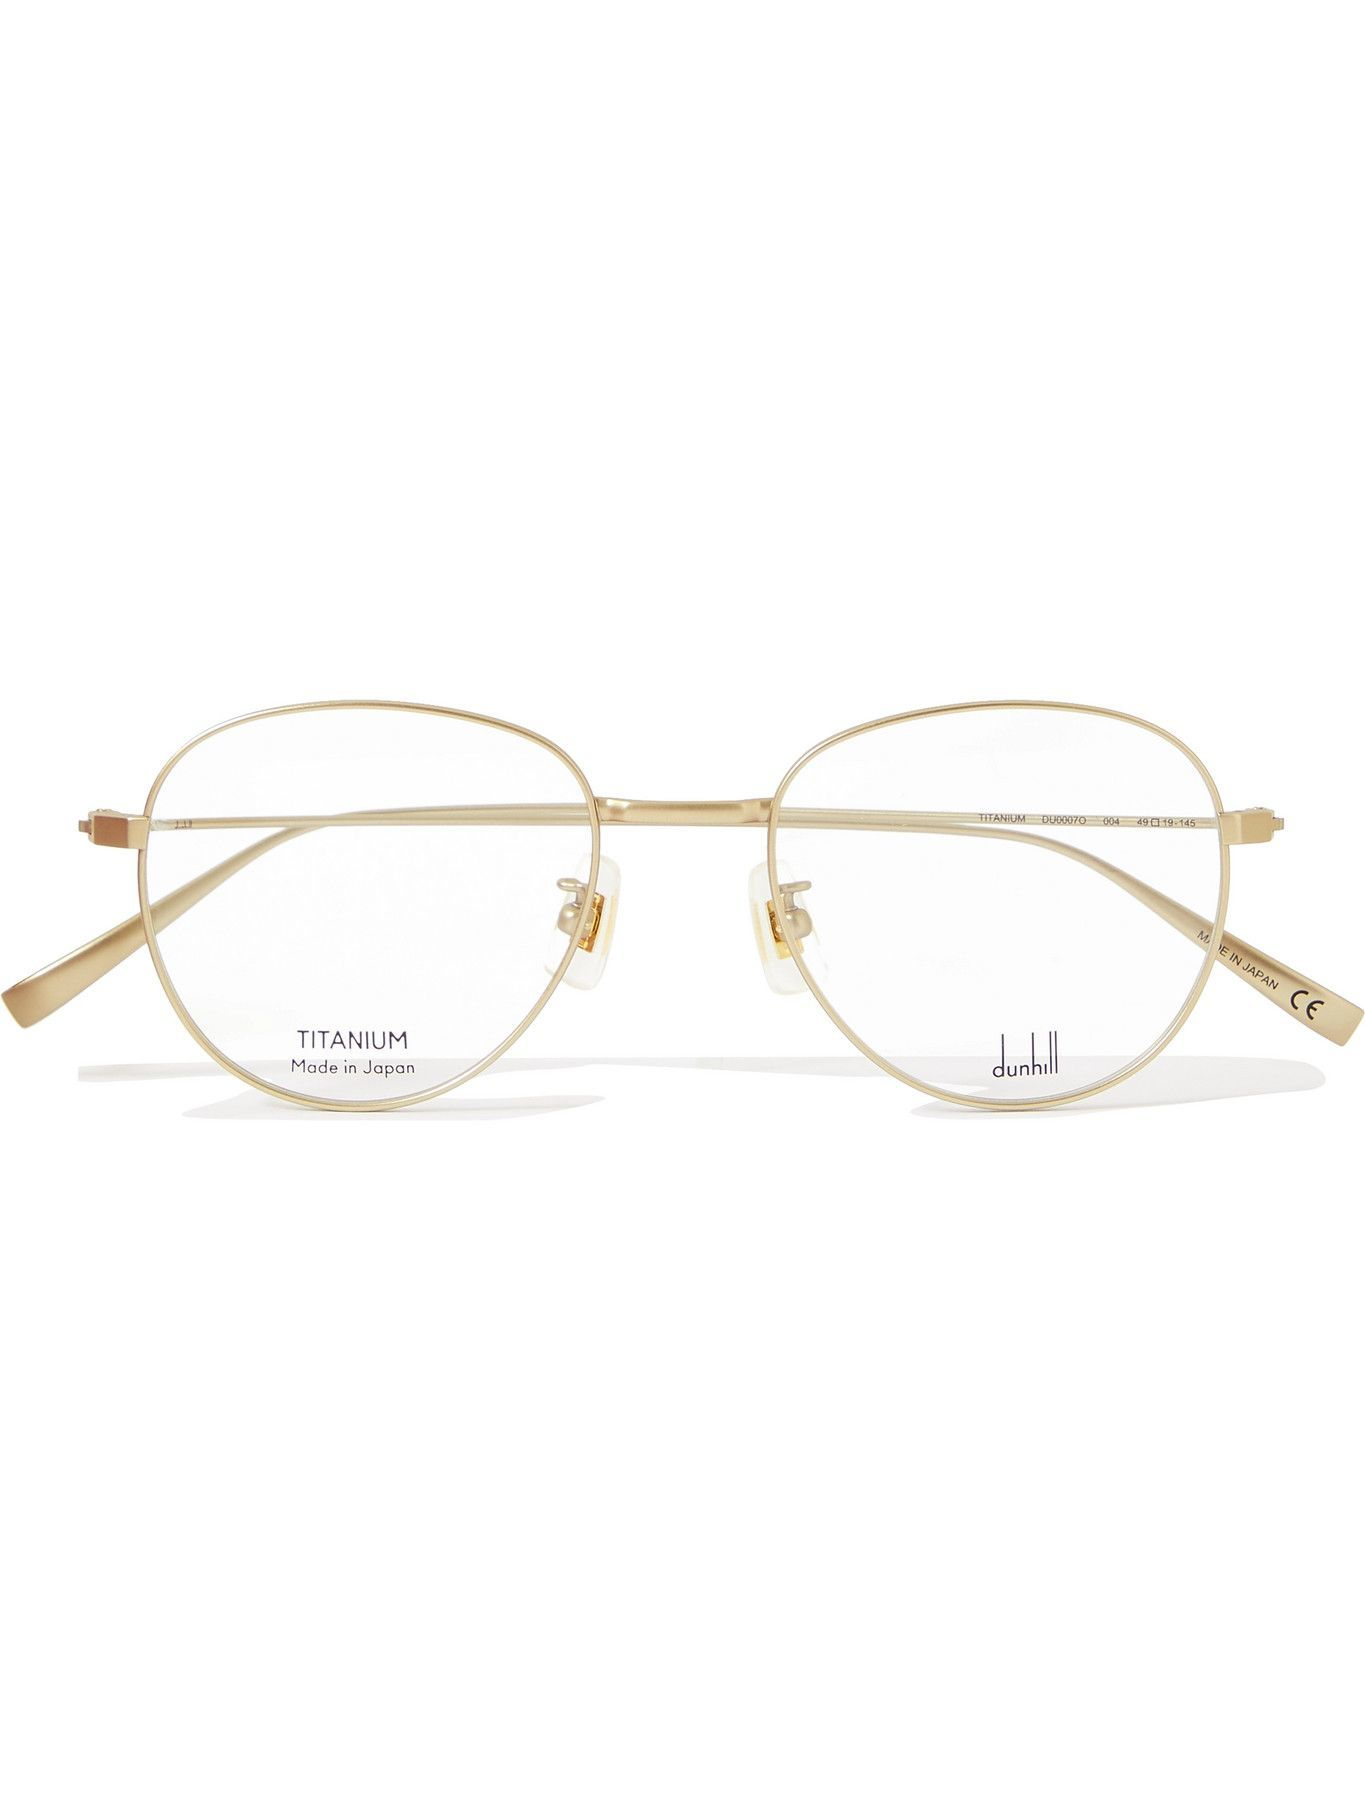 DUNHILL - Round-Frame Gold-Tone Optical Glasses